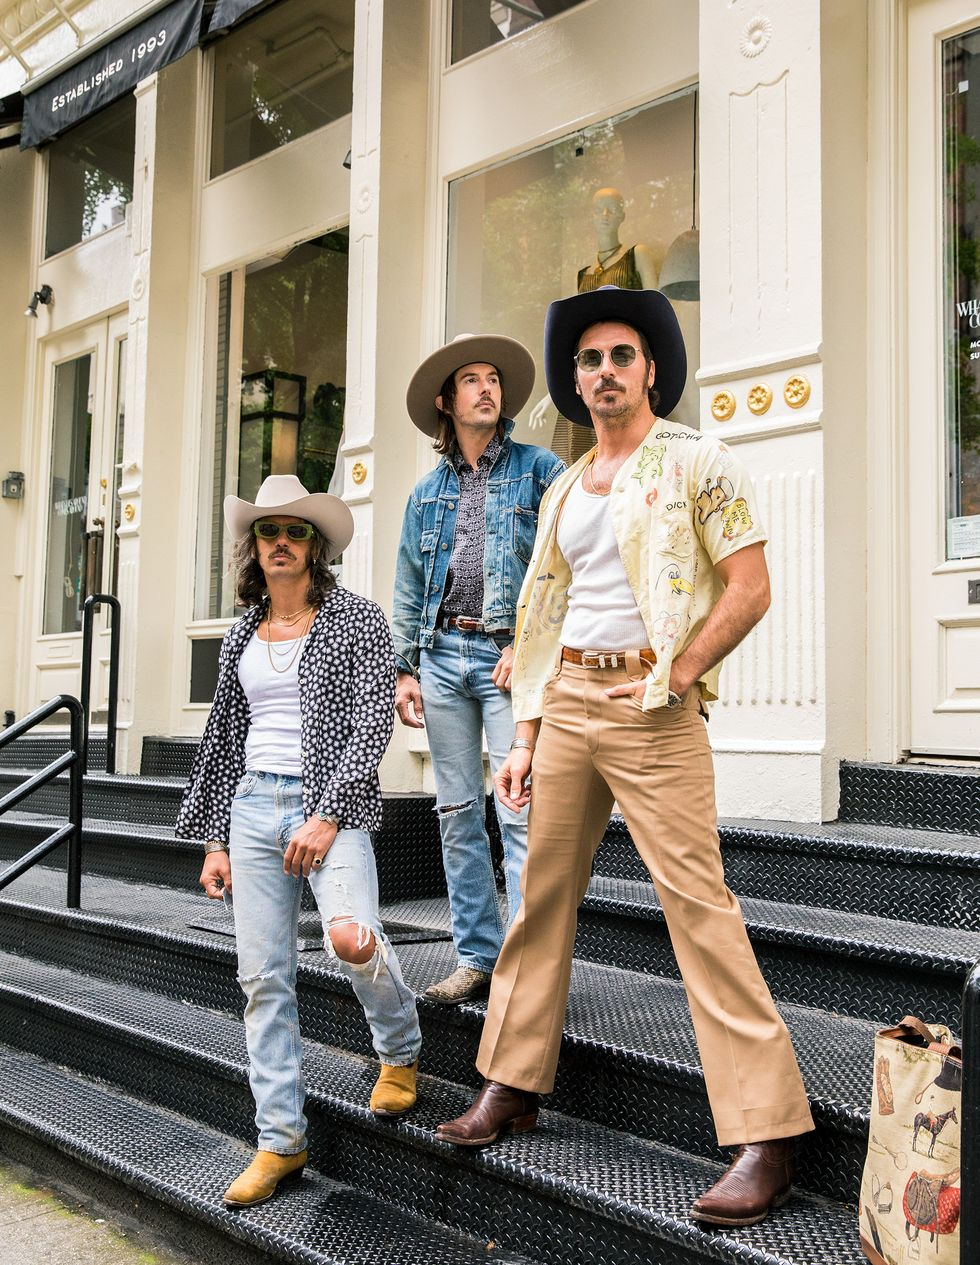 Rhinestone Suits and Cowboy Boots: Midland Reflects on Their Revolutionary Retro Style